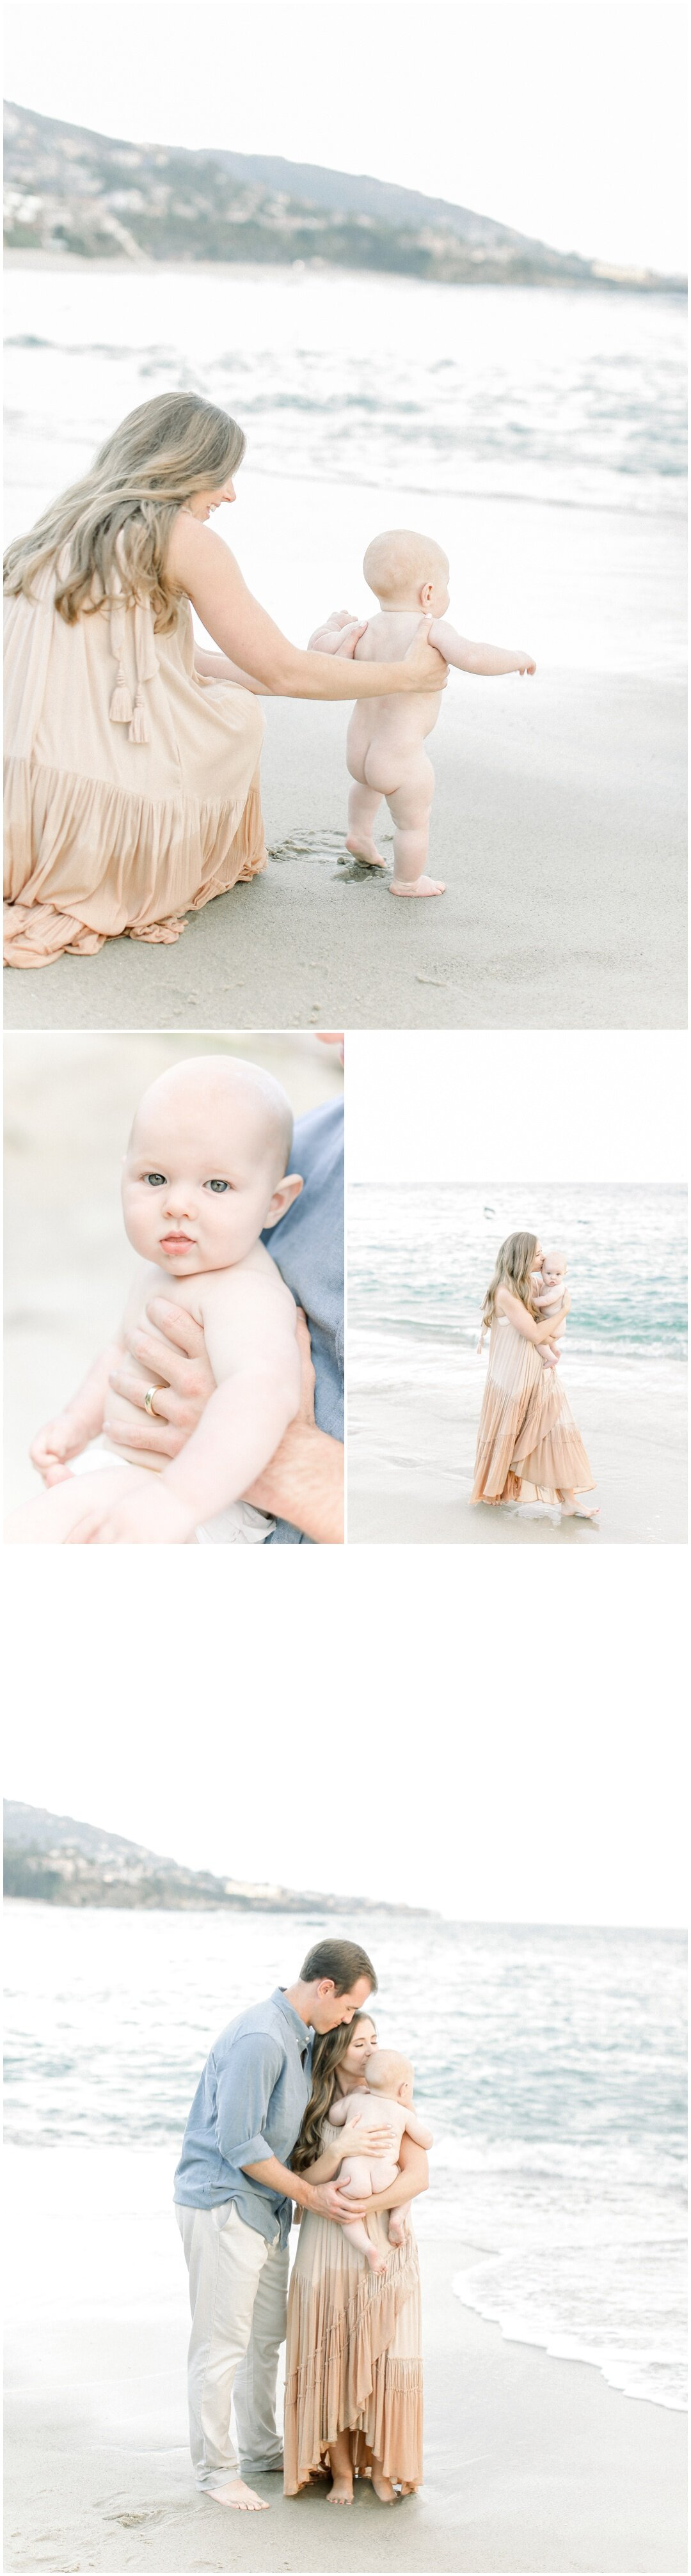 Newport+Beach+Newborn+Maternity+Photographer+Orange+County+Family+Photographer+Cori+Kleckner+Photography+Forgatch+Family+Matt+Kelley+Jack+Forgatch+_4410.jpg